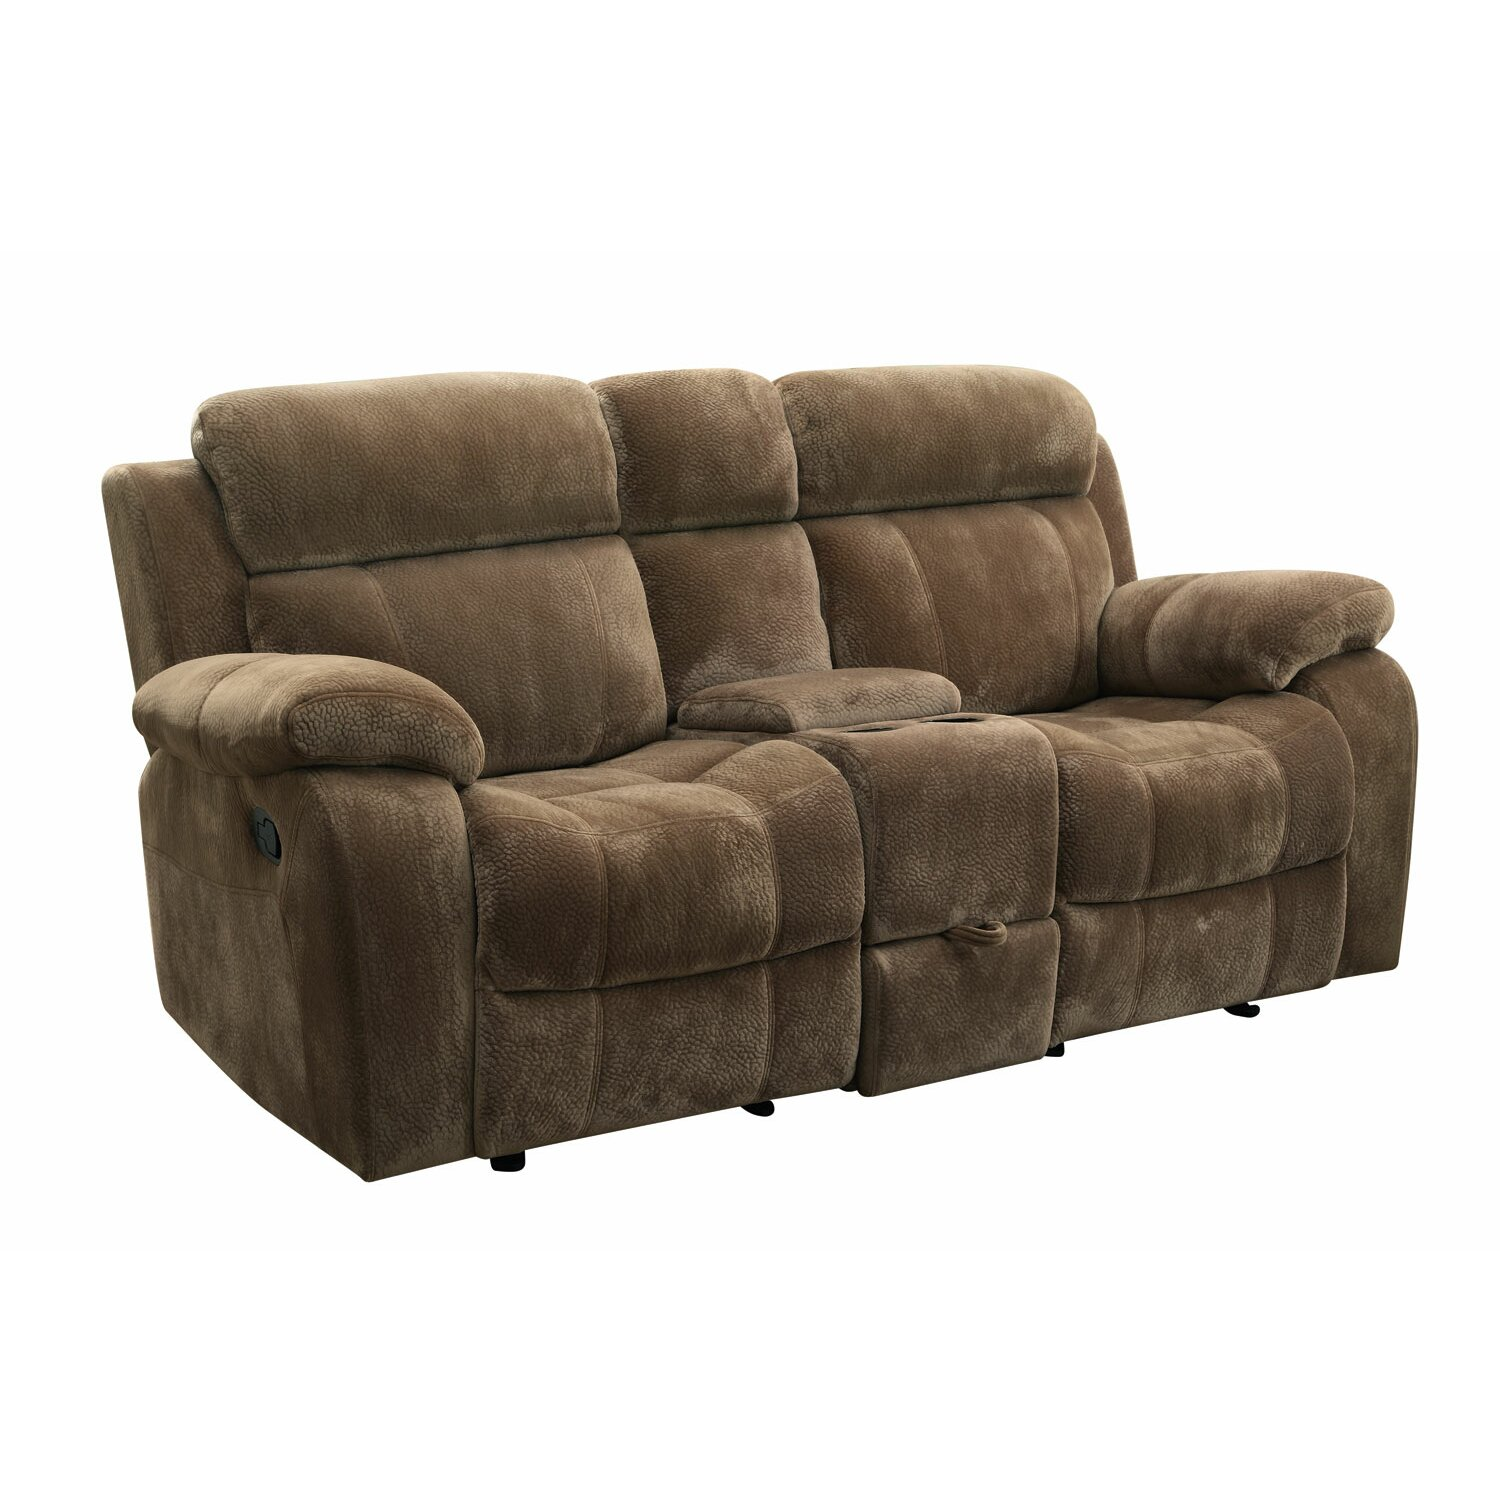 Wildon Home Victor Double Reclining Loveseat Reviews Wayfair